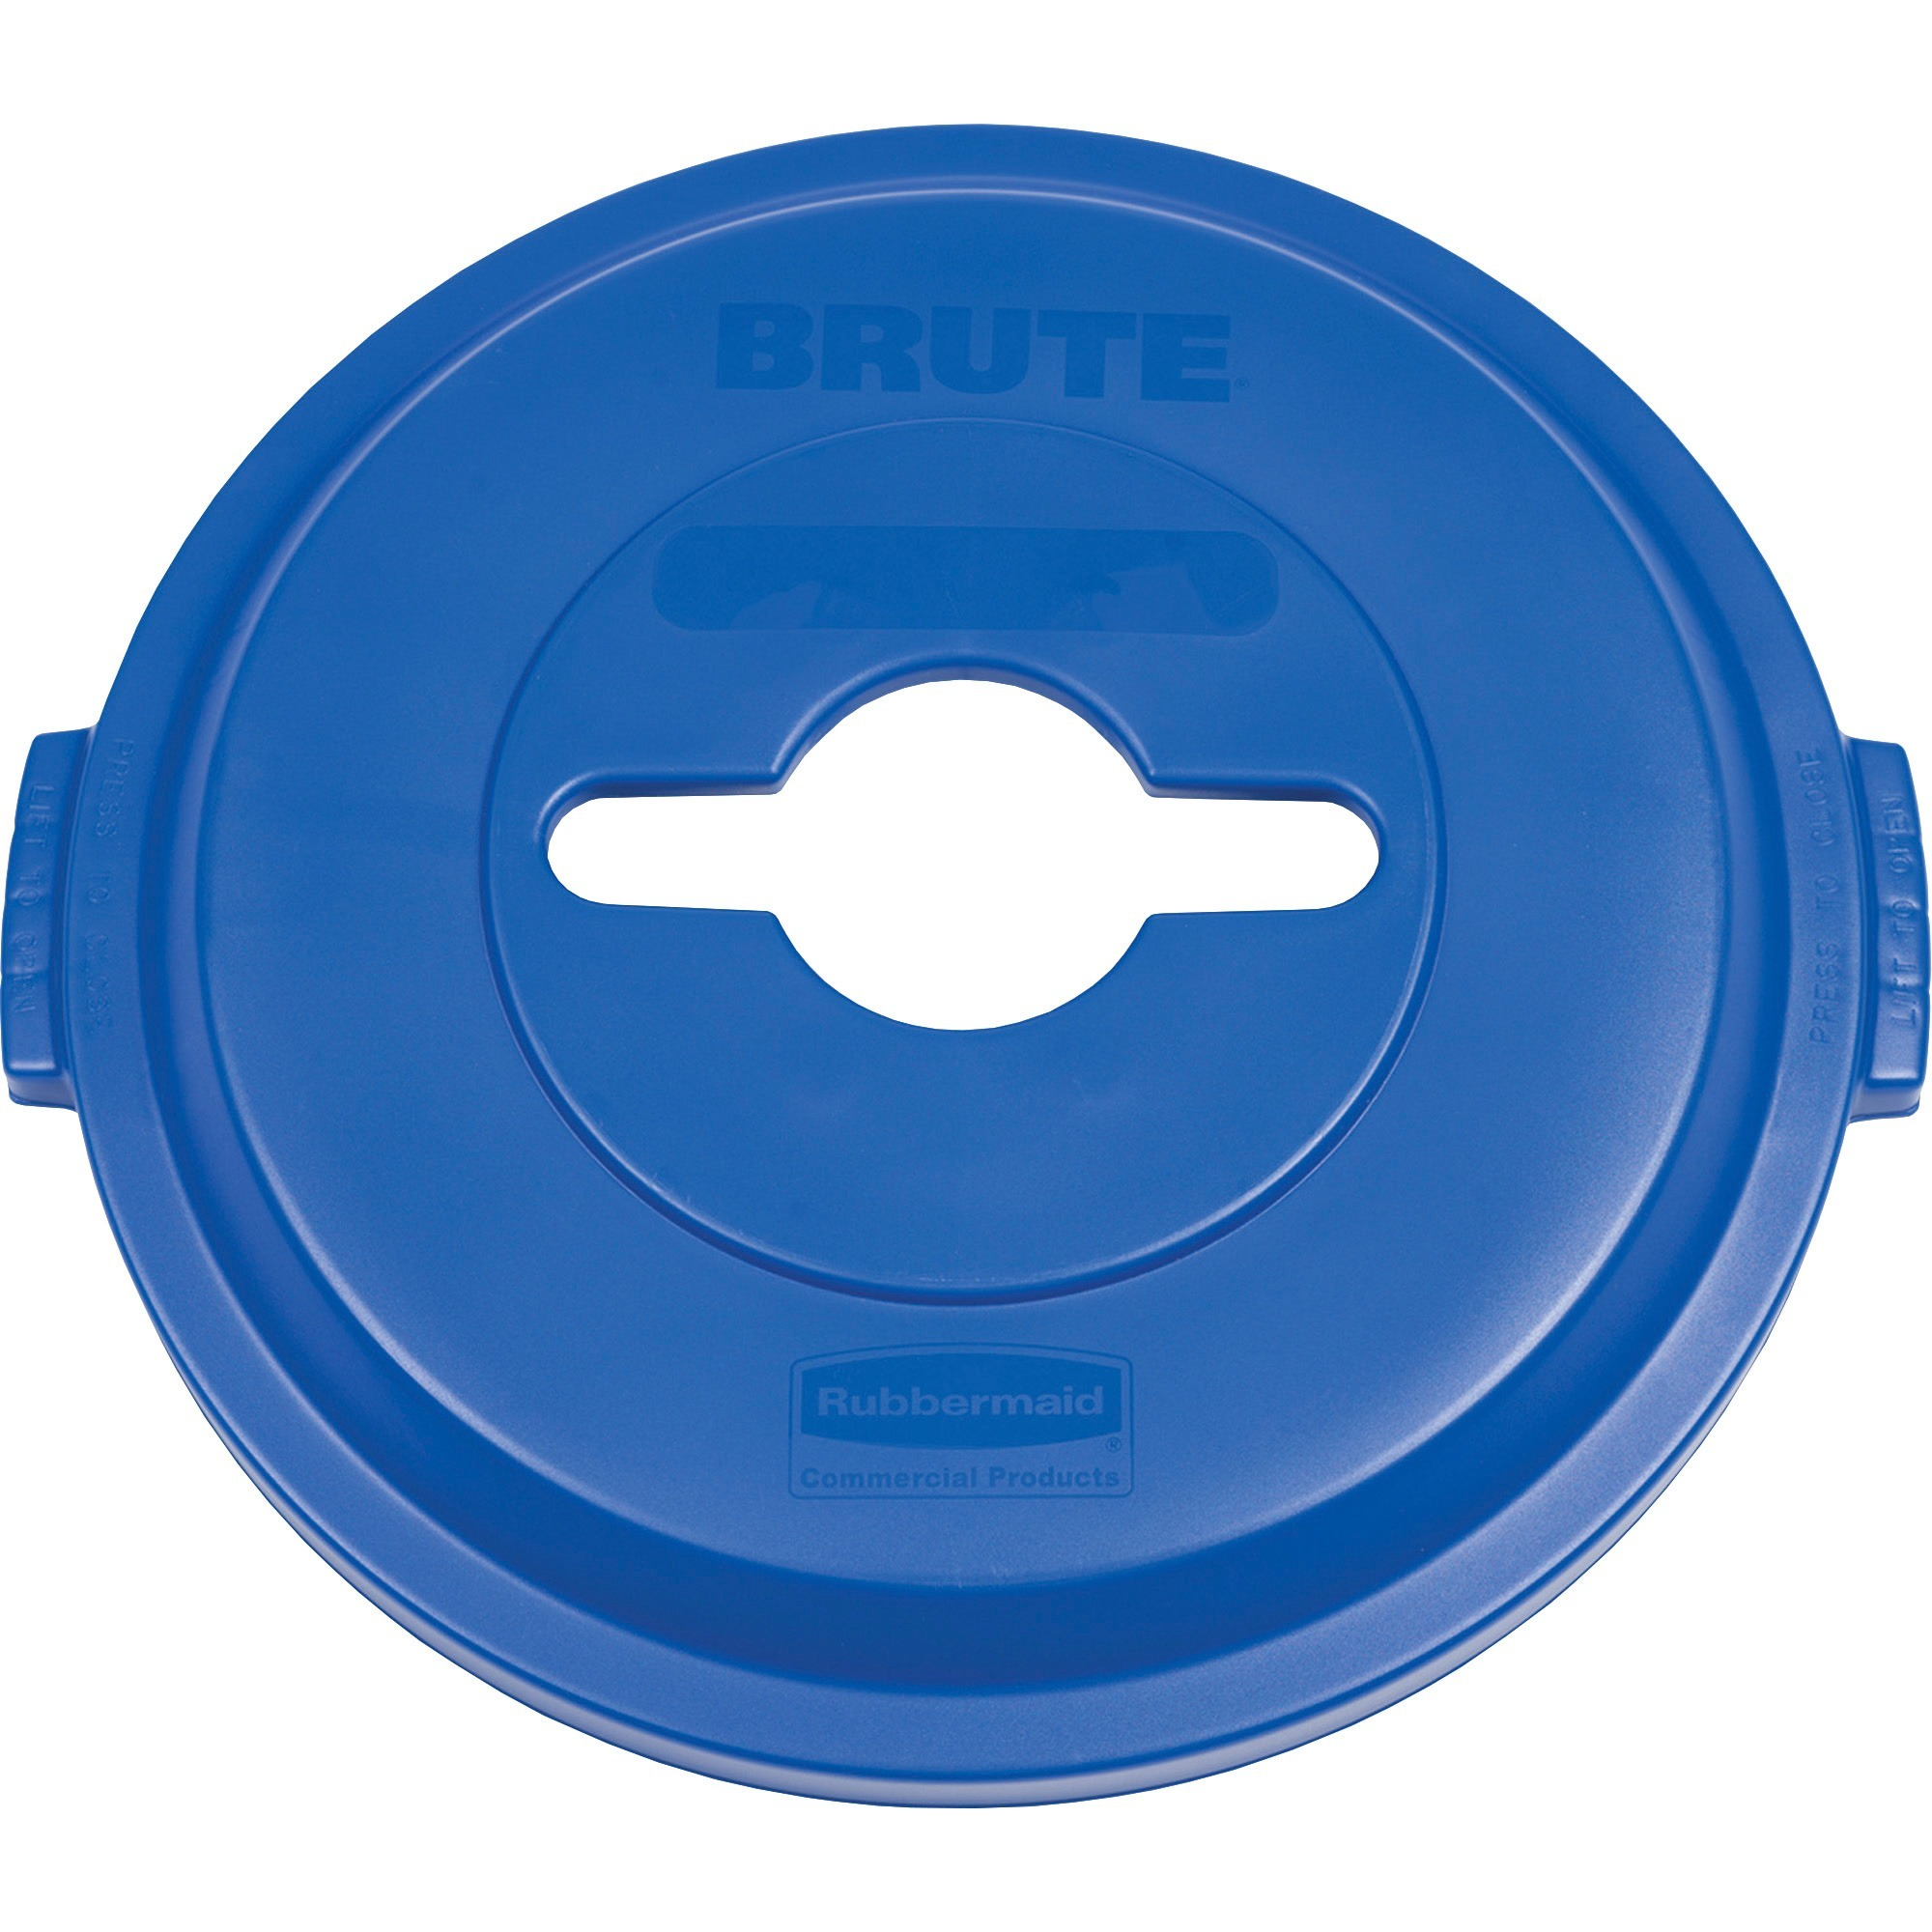 Rubbermaid Commercial, RCP1788380, Brute Hvy-Duty Recycling Container Lid, 1 Each, Blue